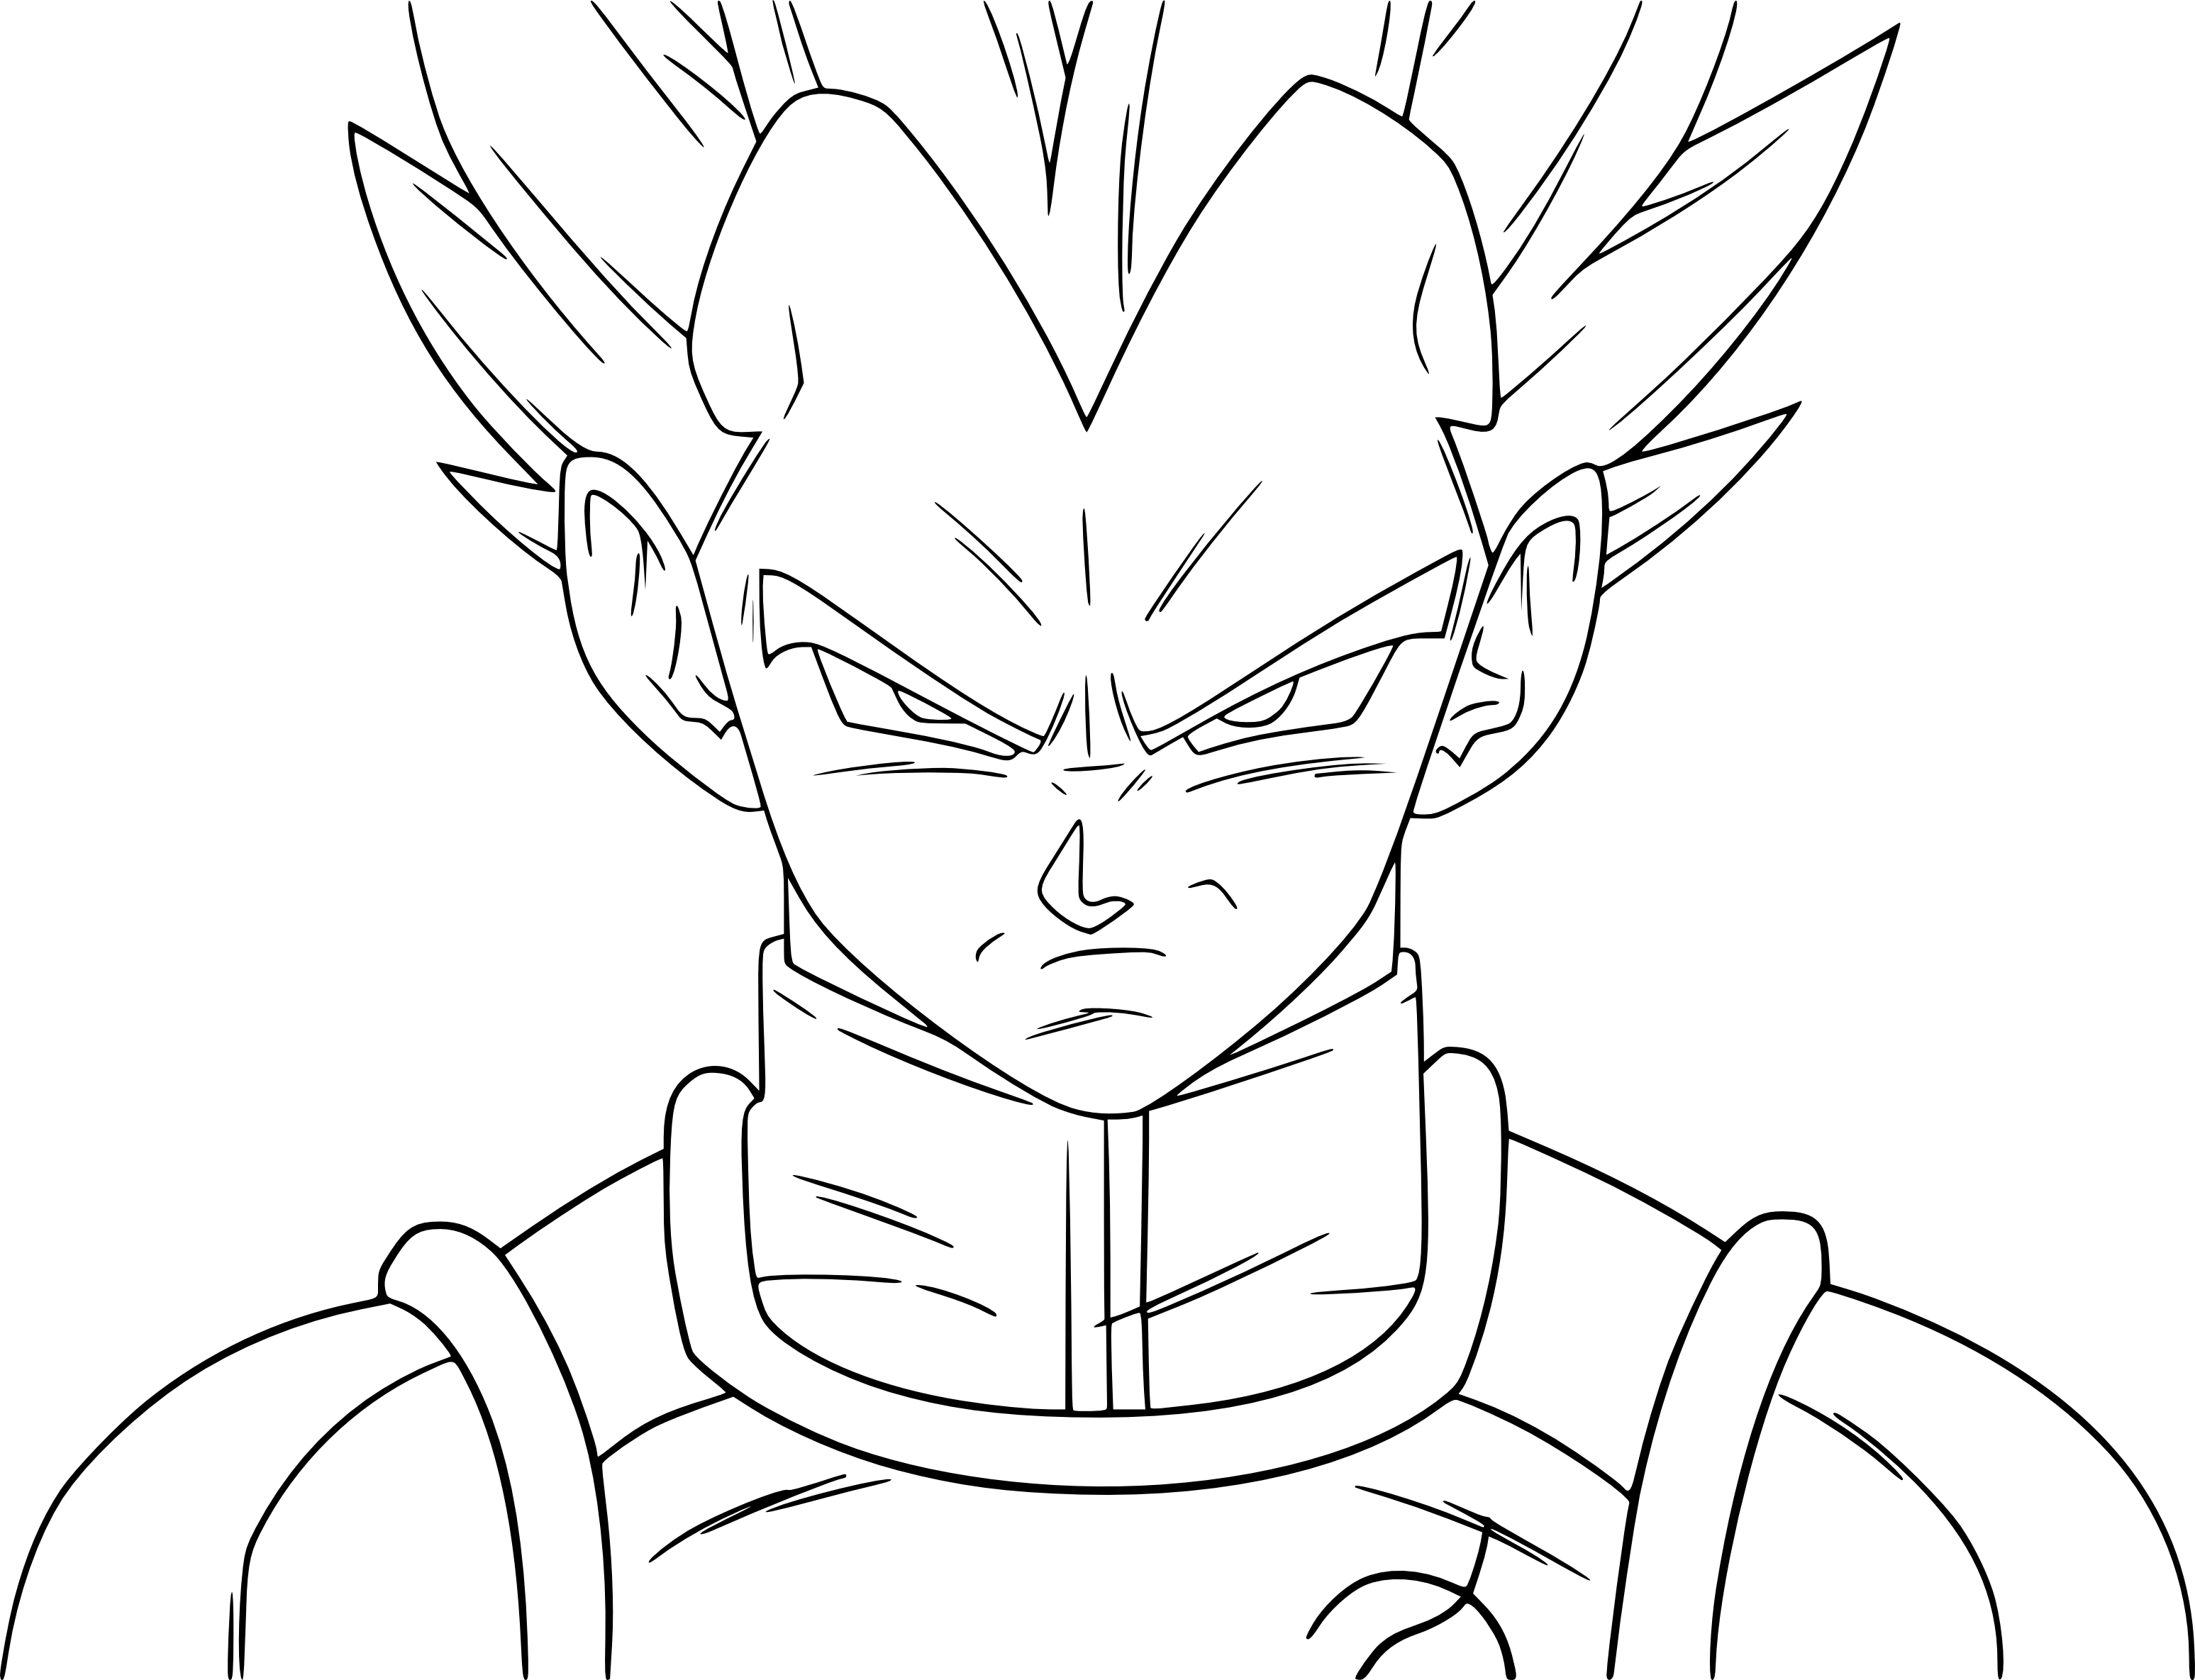 Coloriage vegeta ssj bleu imprimer - Dessin dragon ball z facile ...